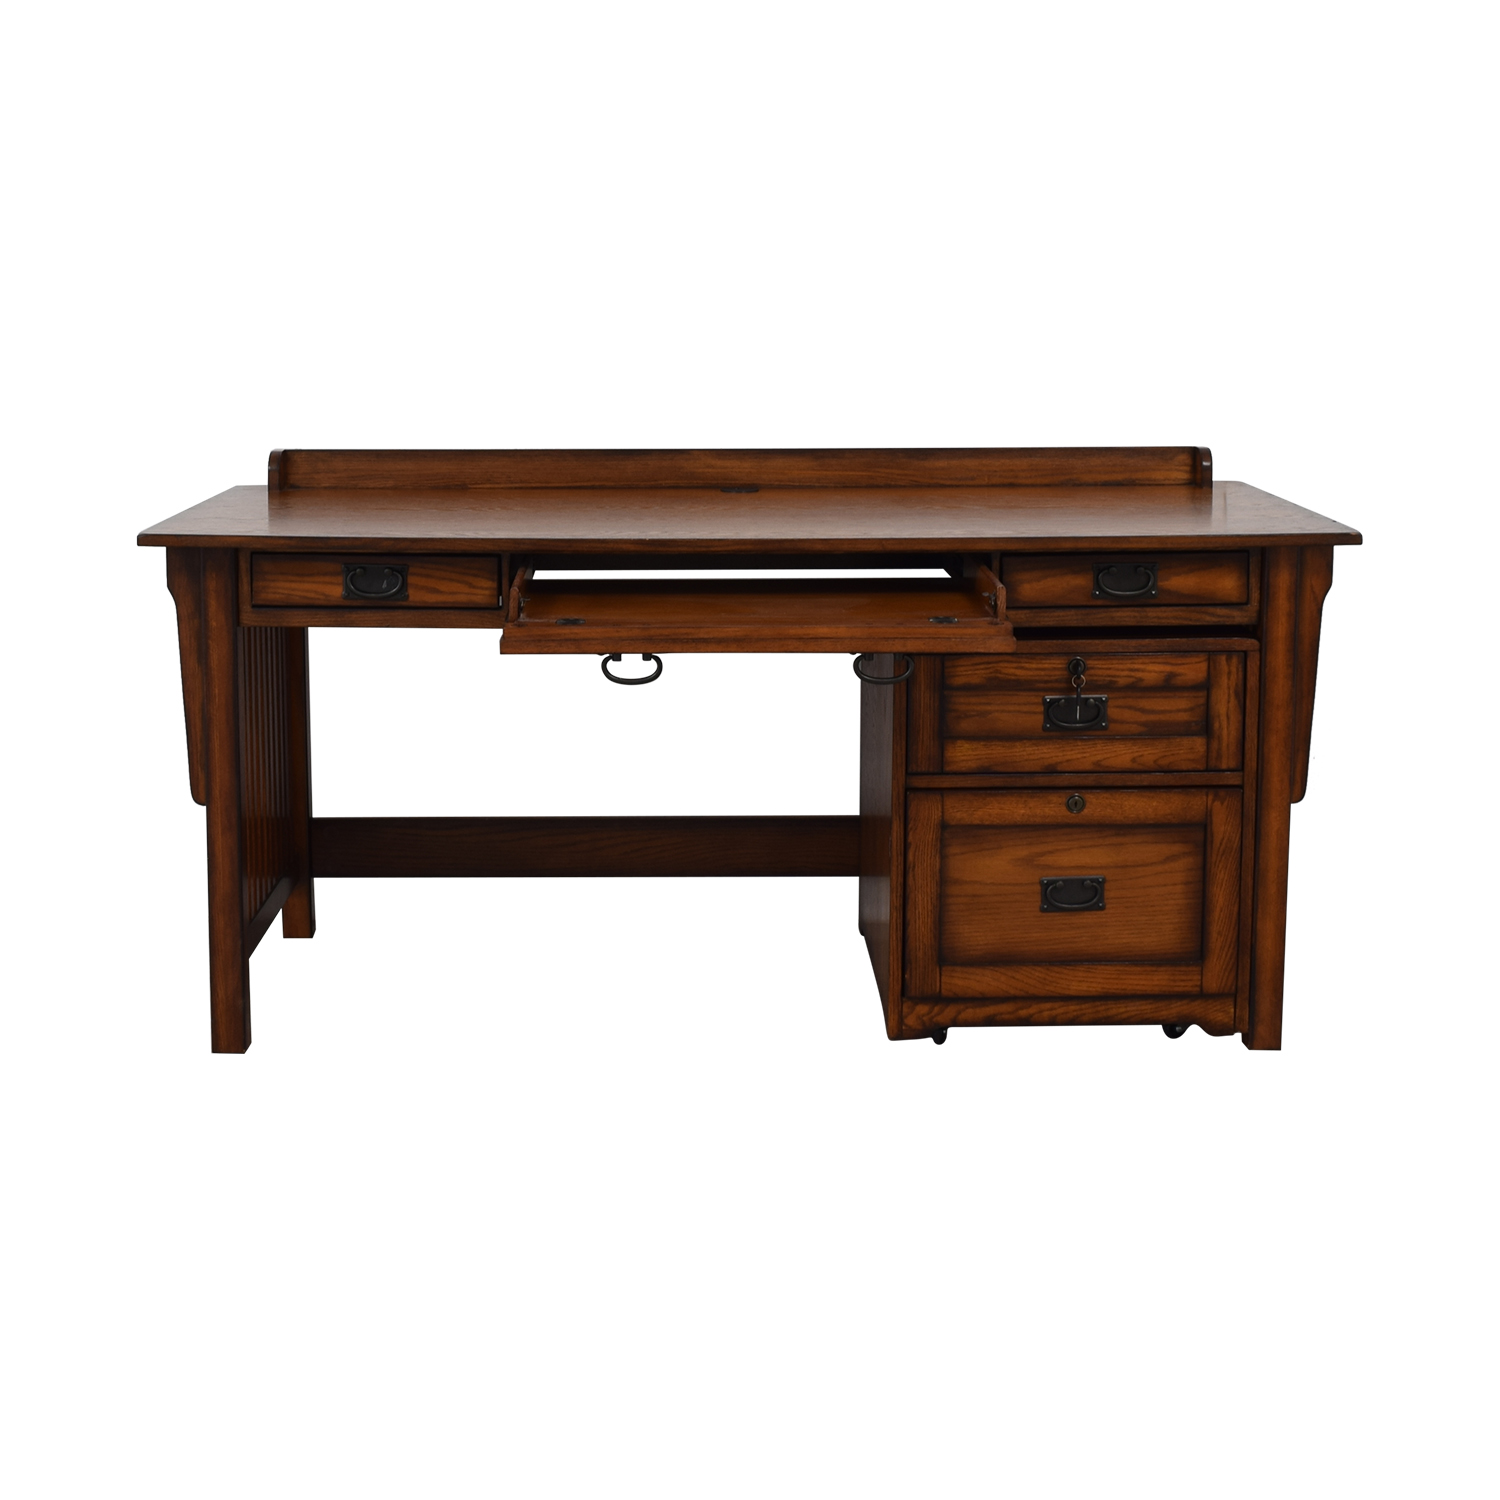 Hammary Furniture Hammary Furniture Wood Desk and File Cabinet second hand